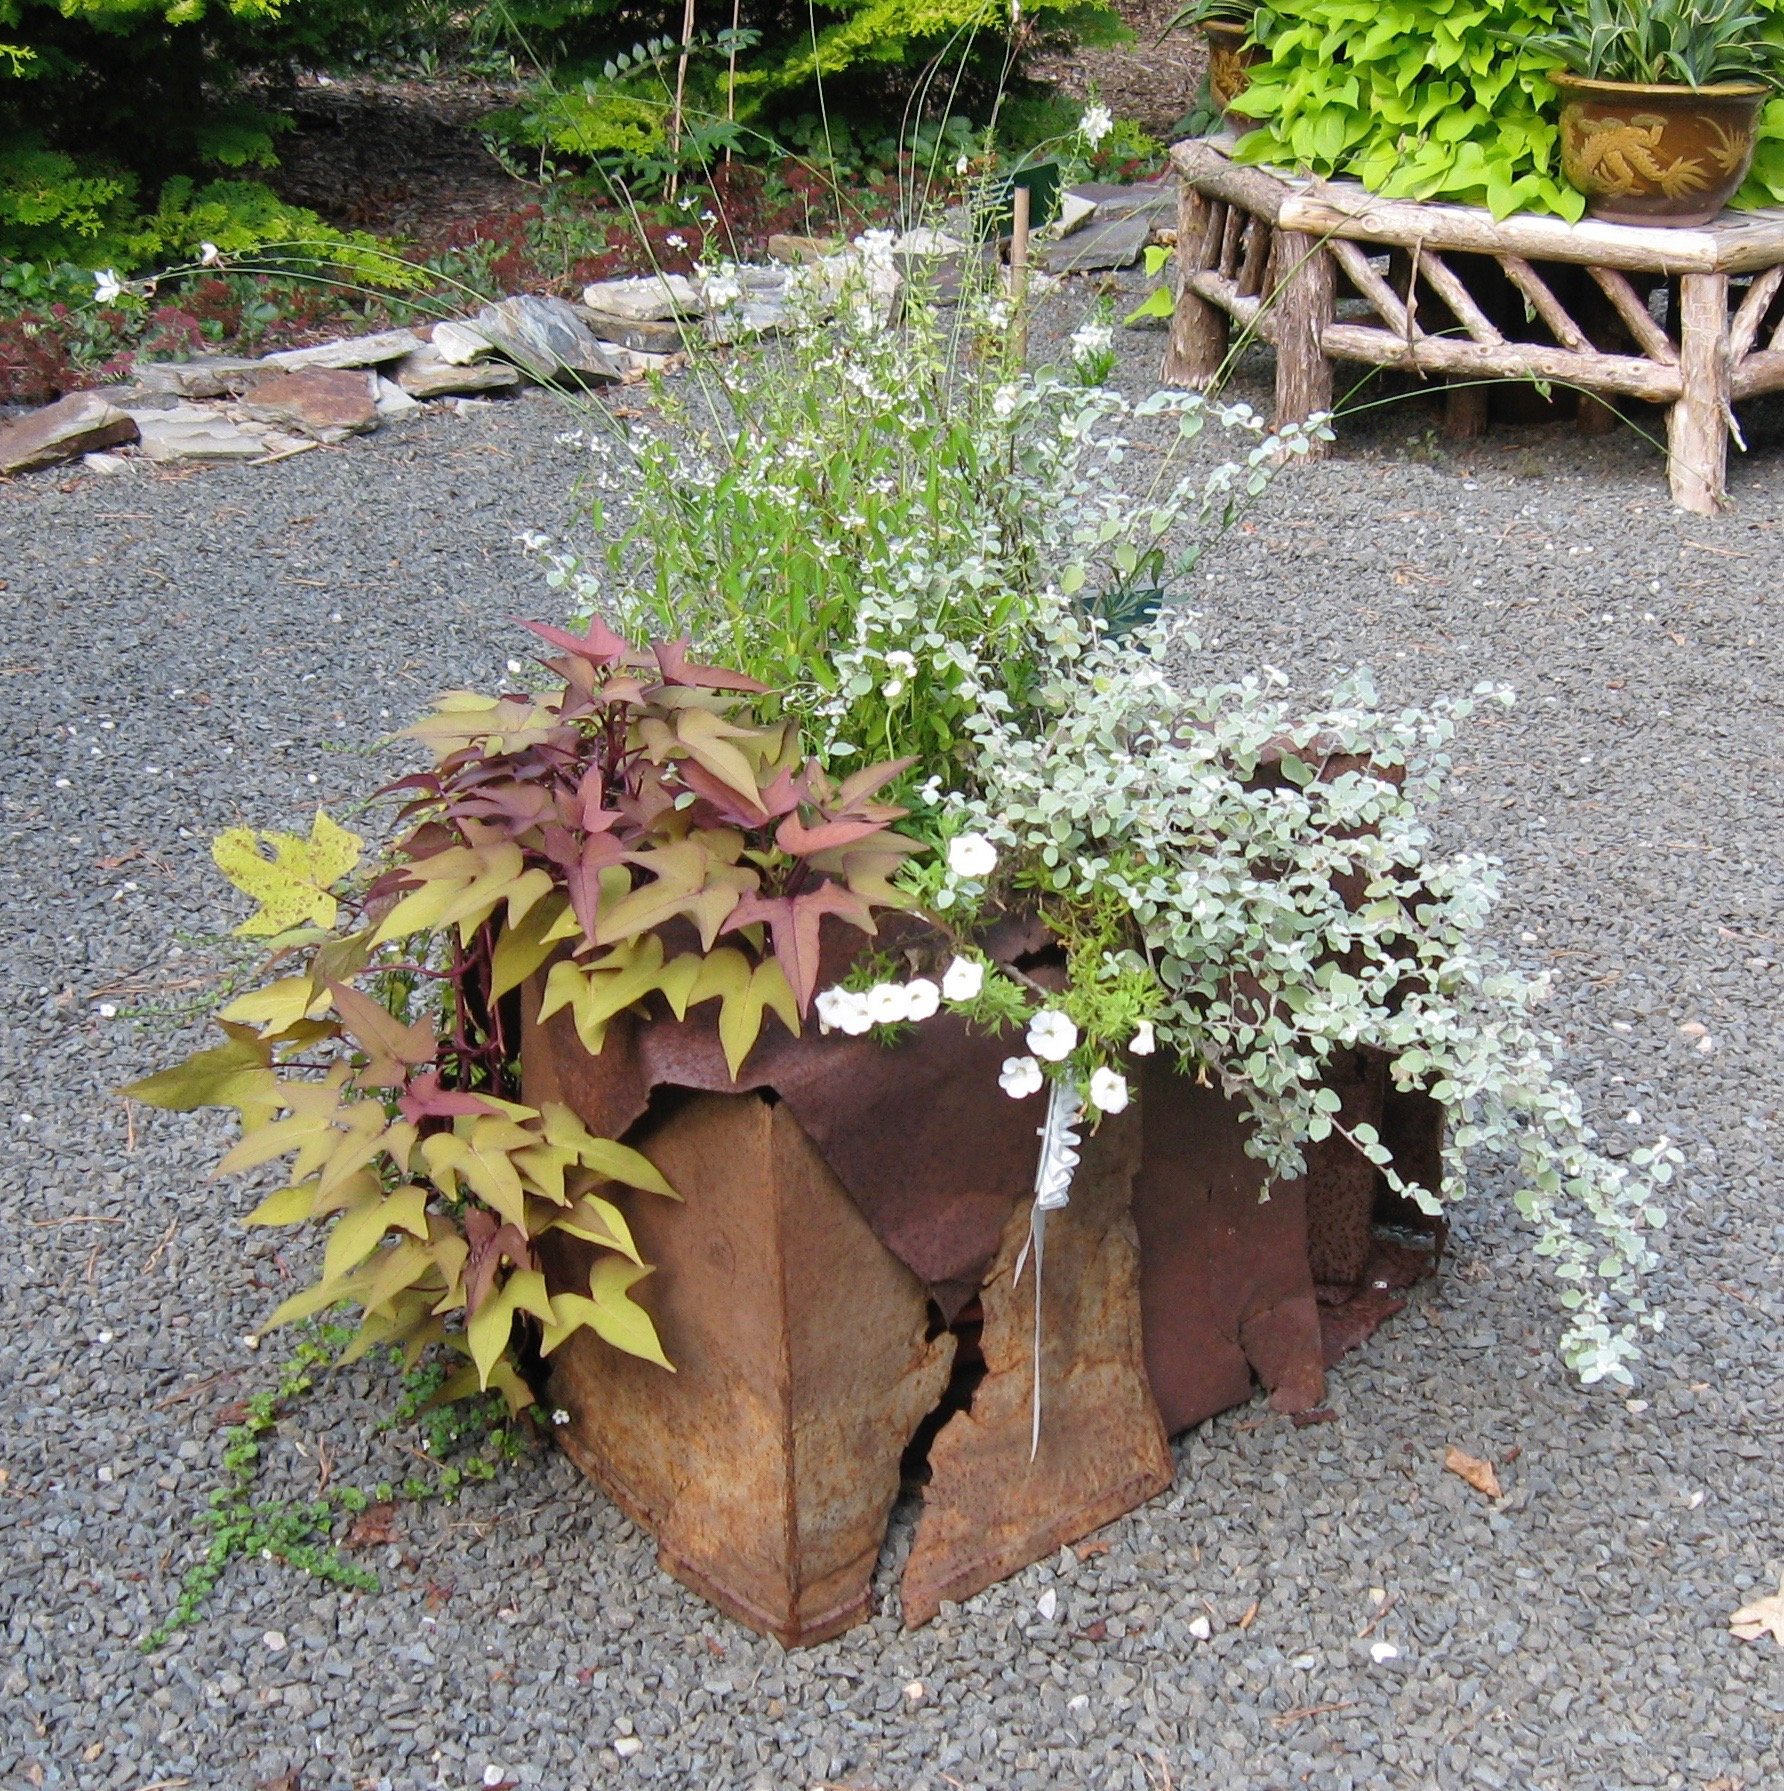 """Reclamation 9.18.2010    """"Planters On/Off the Ground"""" an exhibit at Jack Lenor Larsen's LongHouse Reserve in East Hampton, NY .  M  etal shelving found on the side of the road and used  as the surround for delicate plantings. This was taken 3 months after the initial planting."""